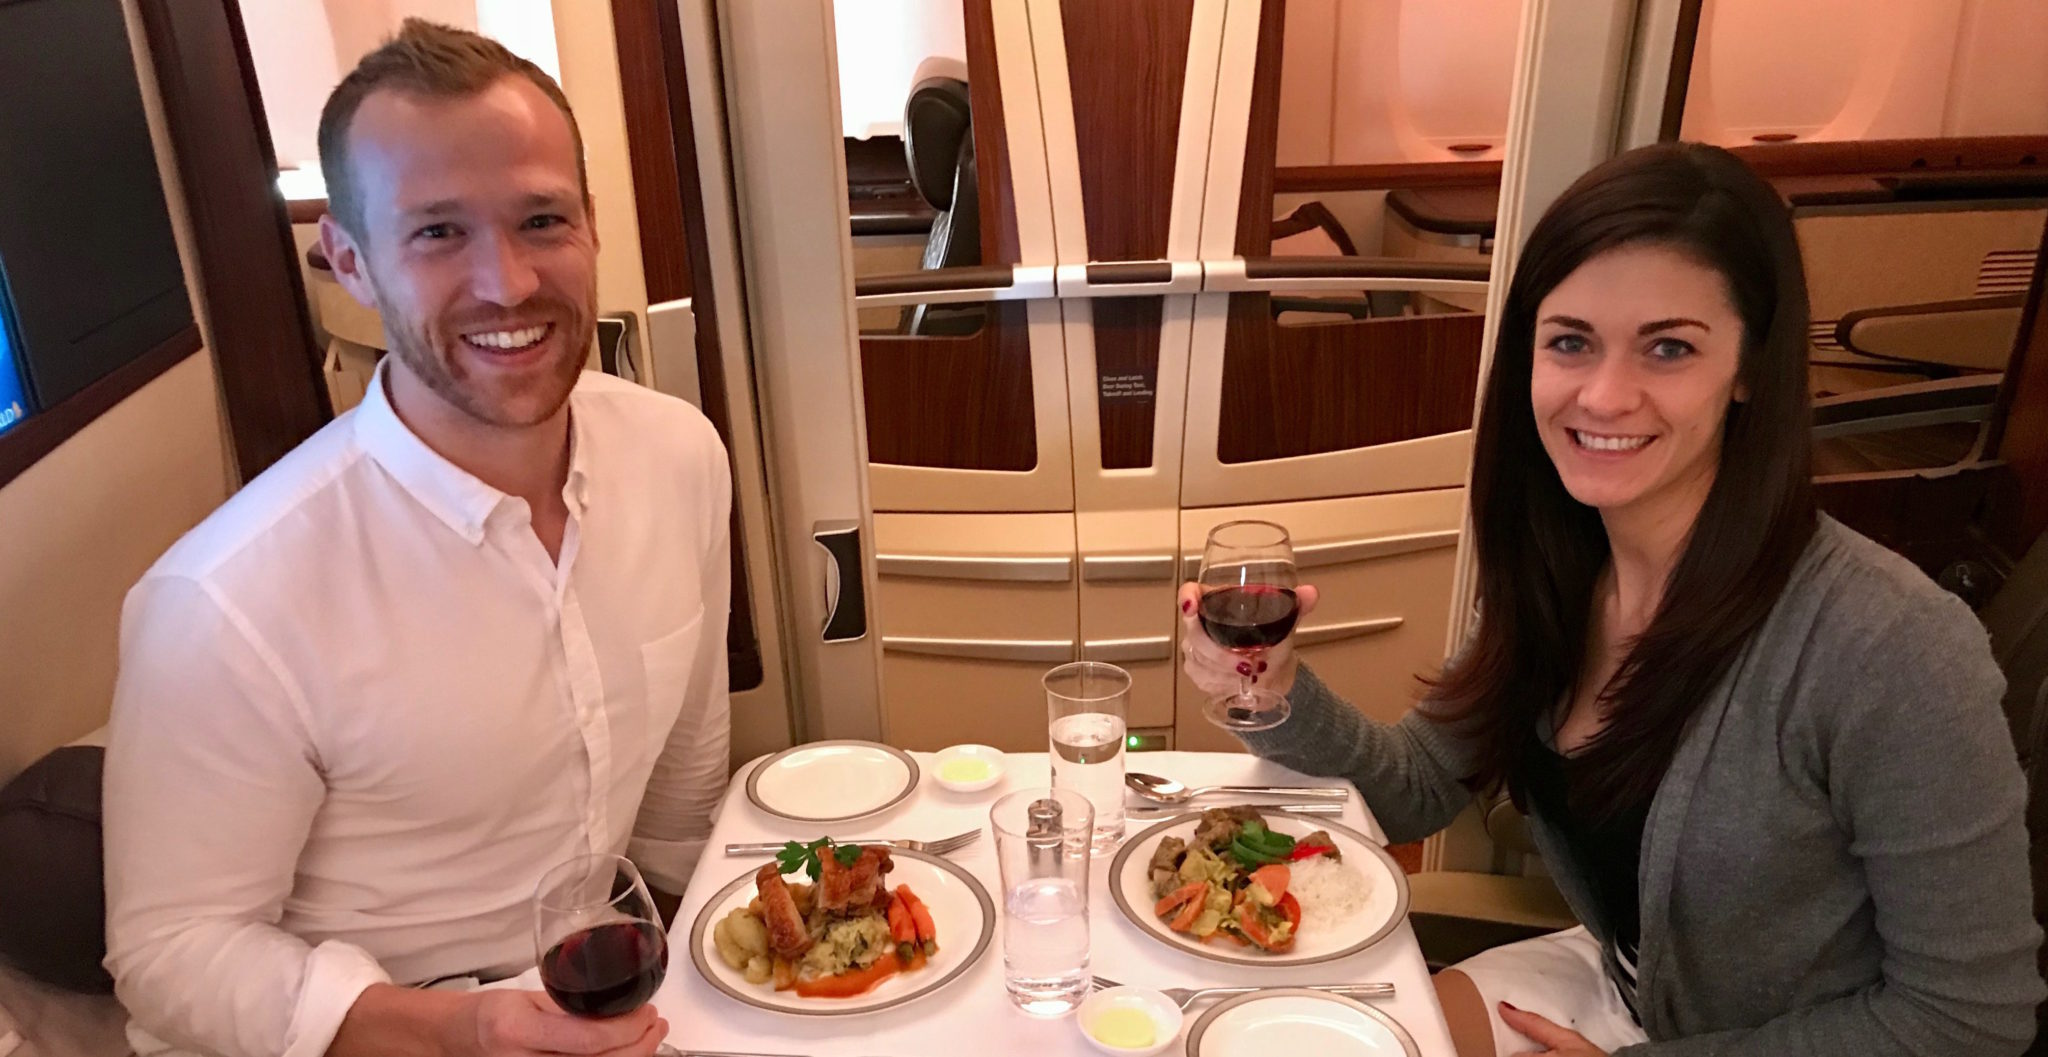 Singapore Suites First Class A380 Review - JFK to FRA to SIN